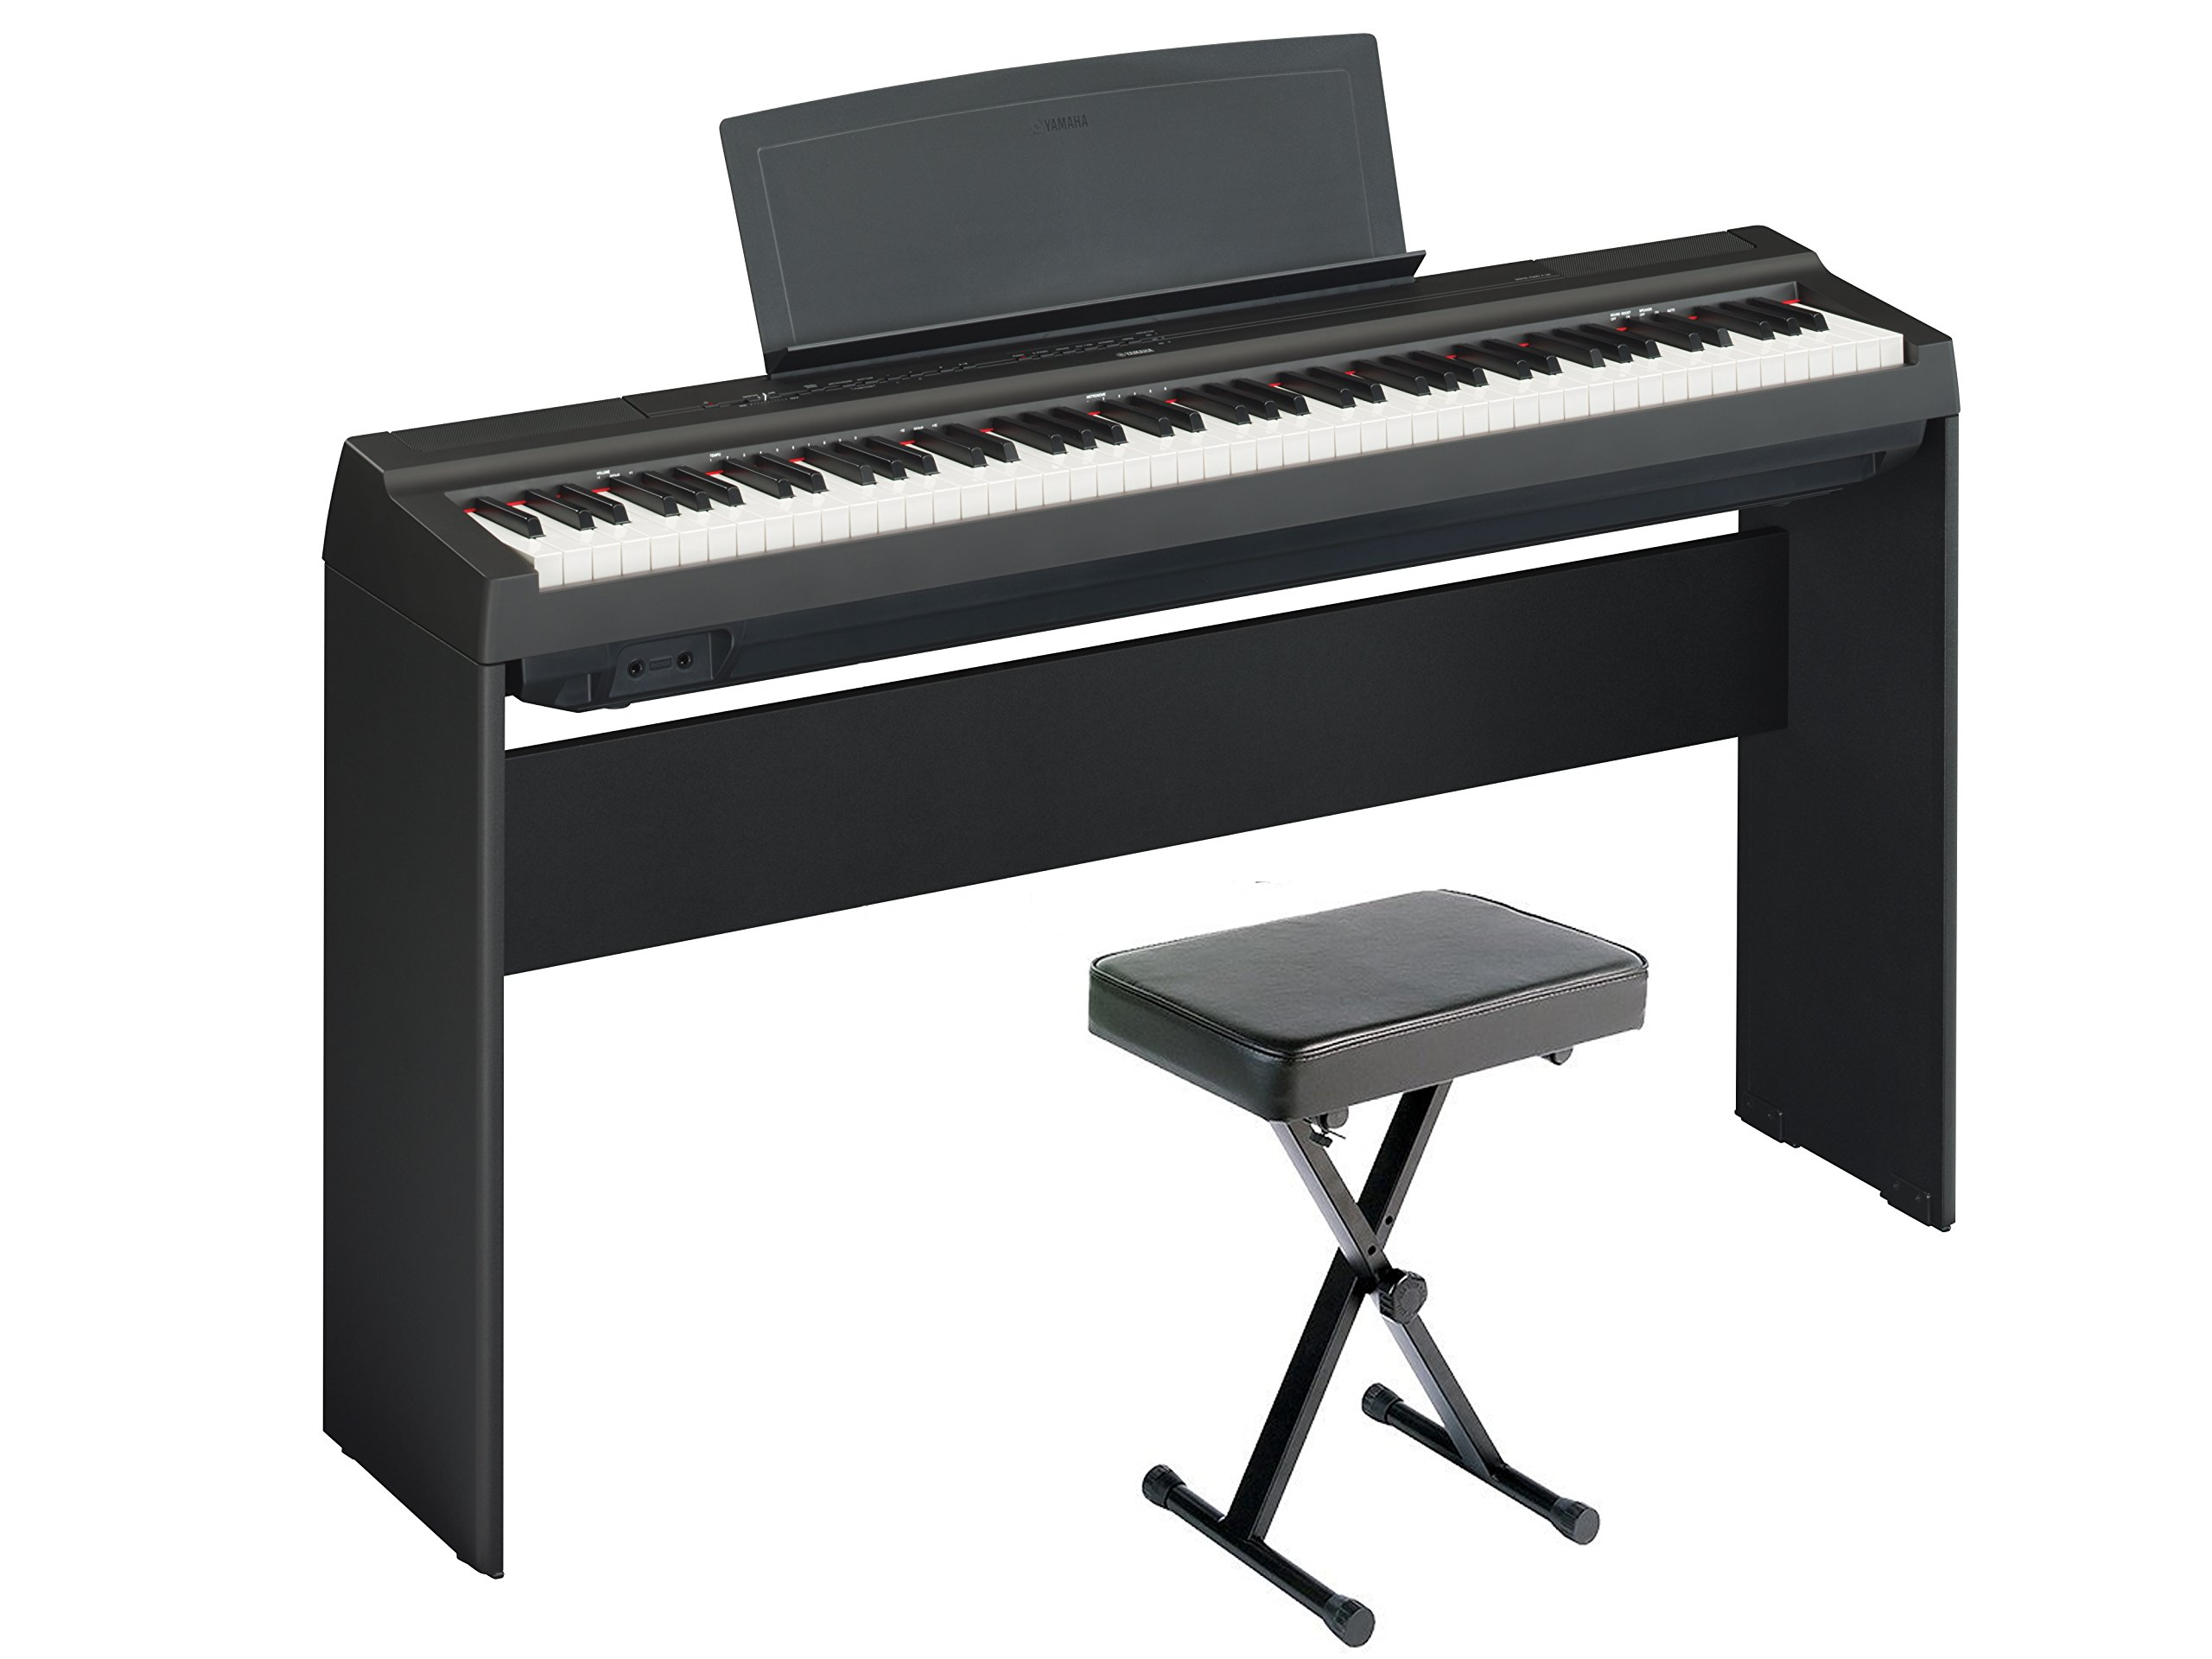 Yamaha P125 Digital Piano Home Bundle with Furniture Stand and Bench, Black by YAMAHA